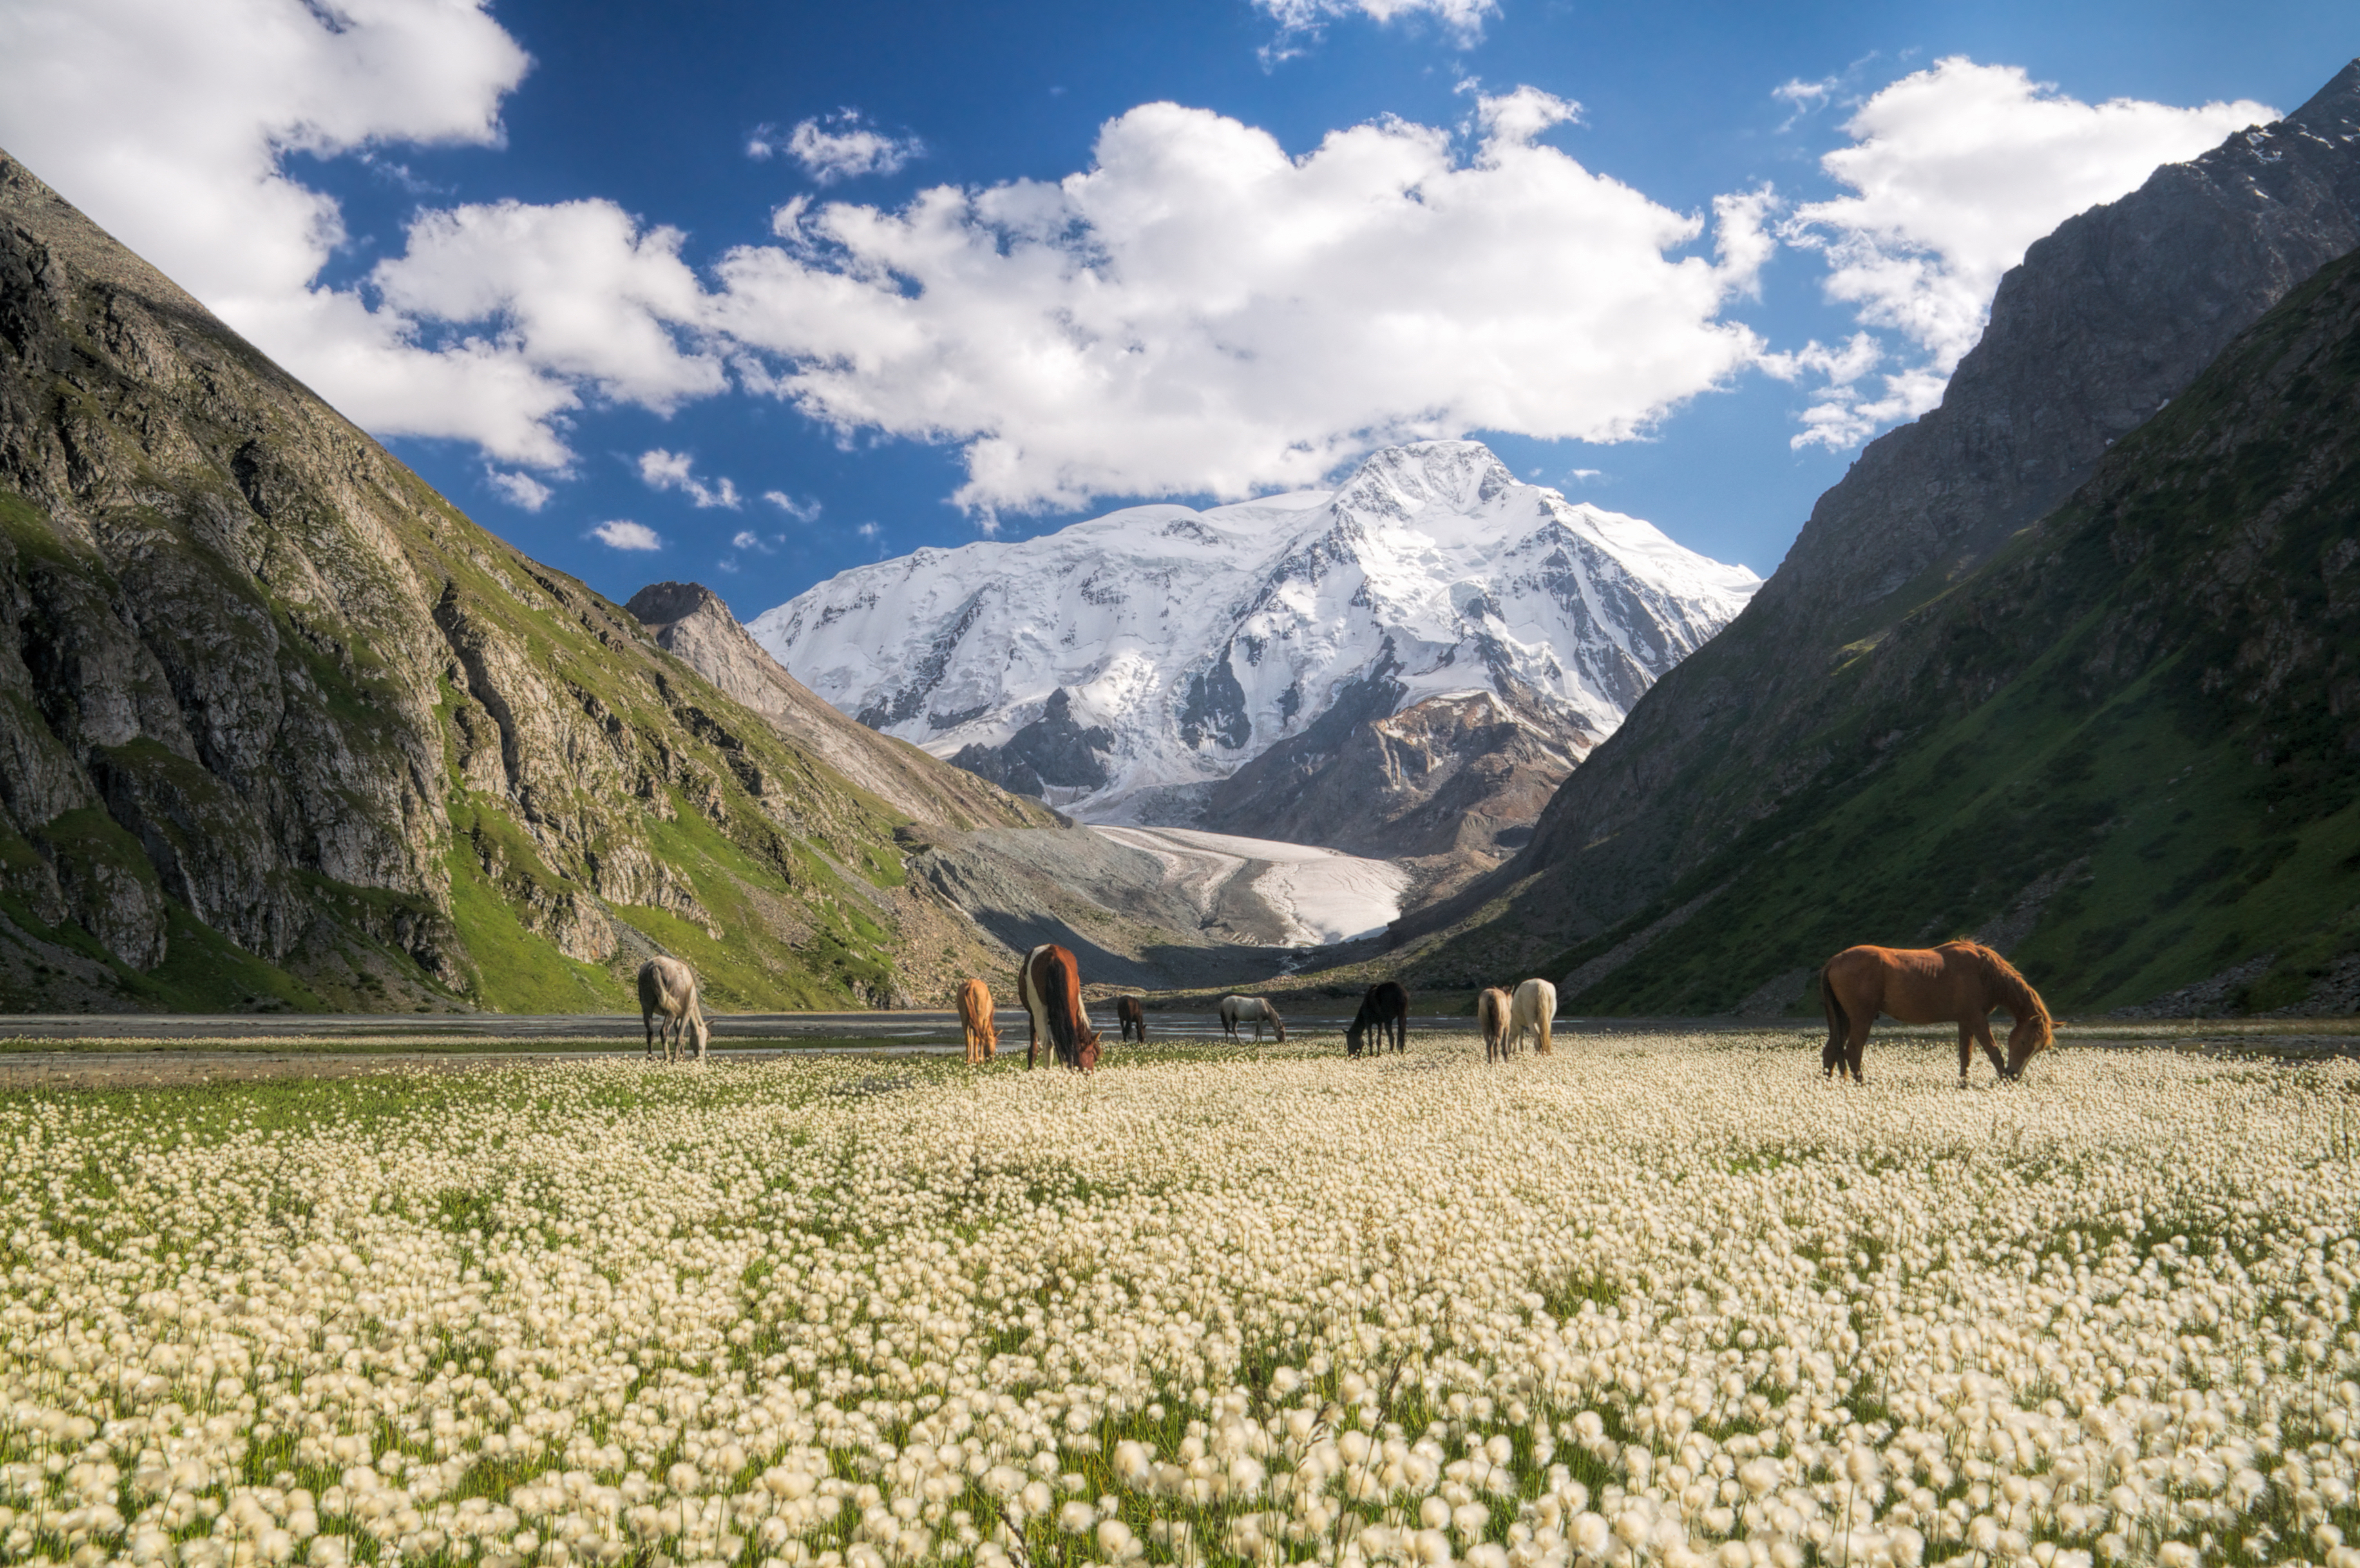 The Tien Shan Mountains